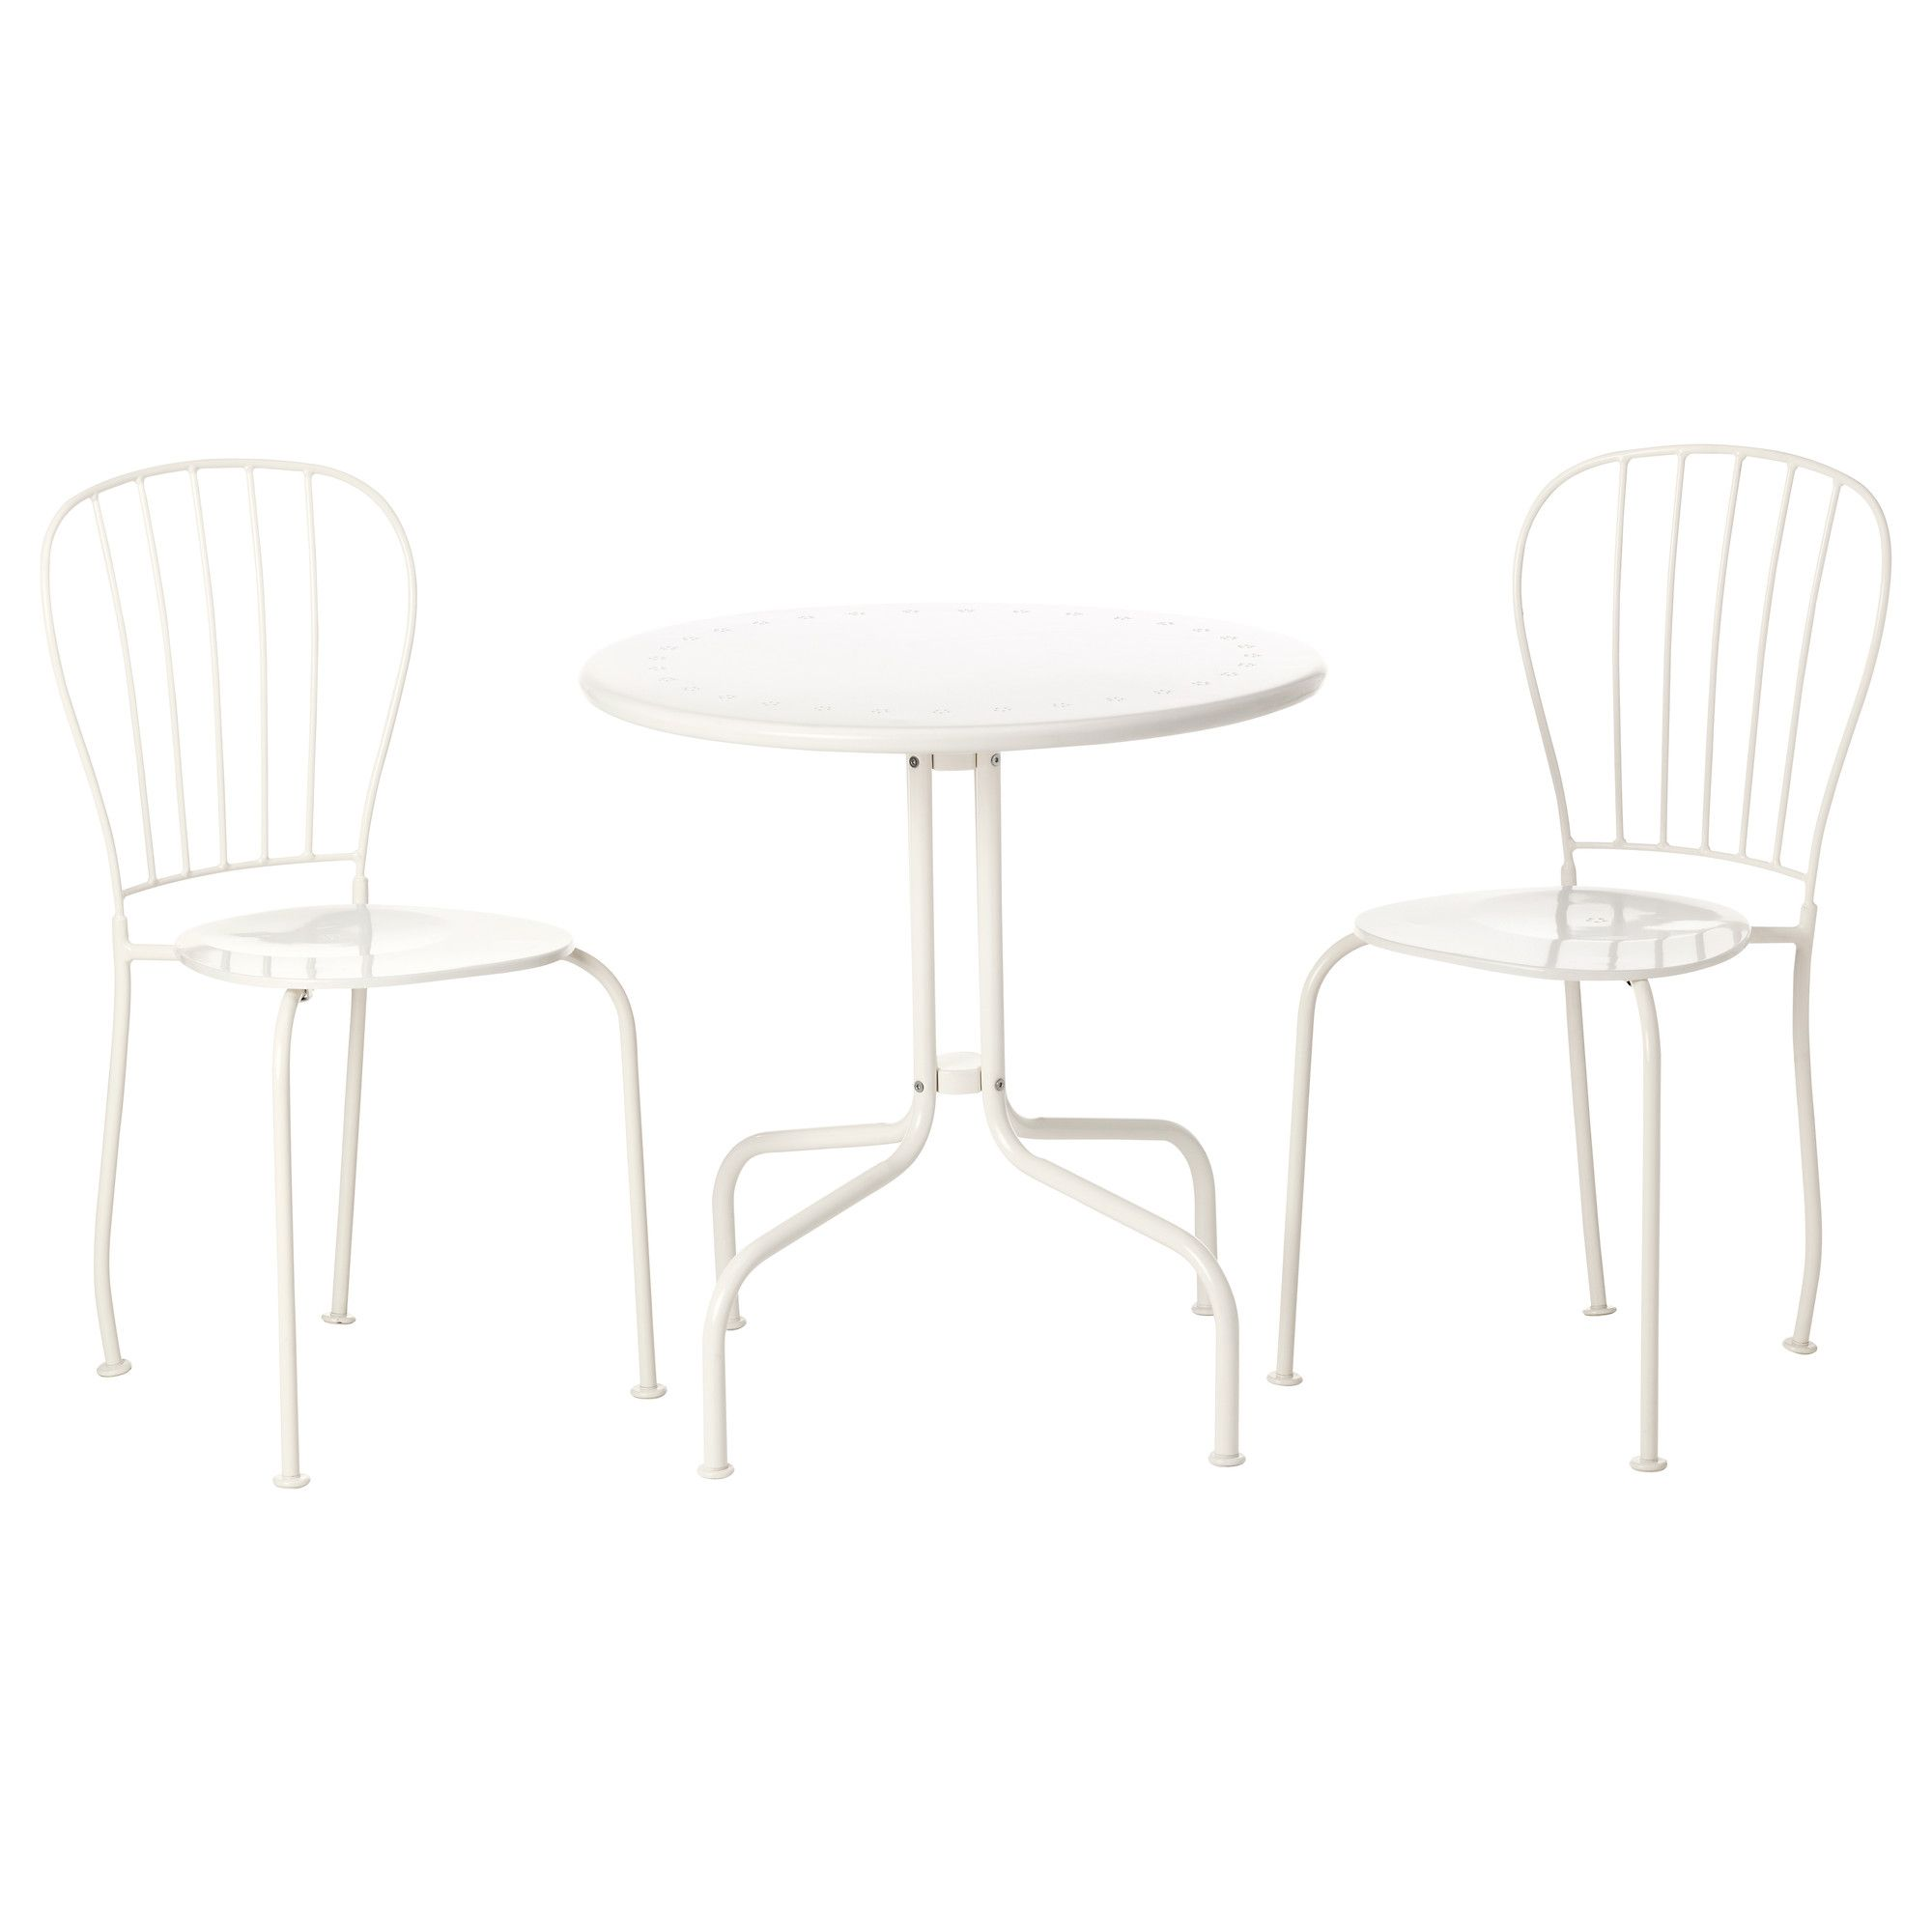 Ikea Gartenmöbel Läckö LÄckÖ Table And 2 Chairs White Ikea Got A Small Patio Or